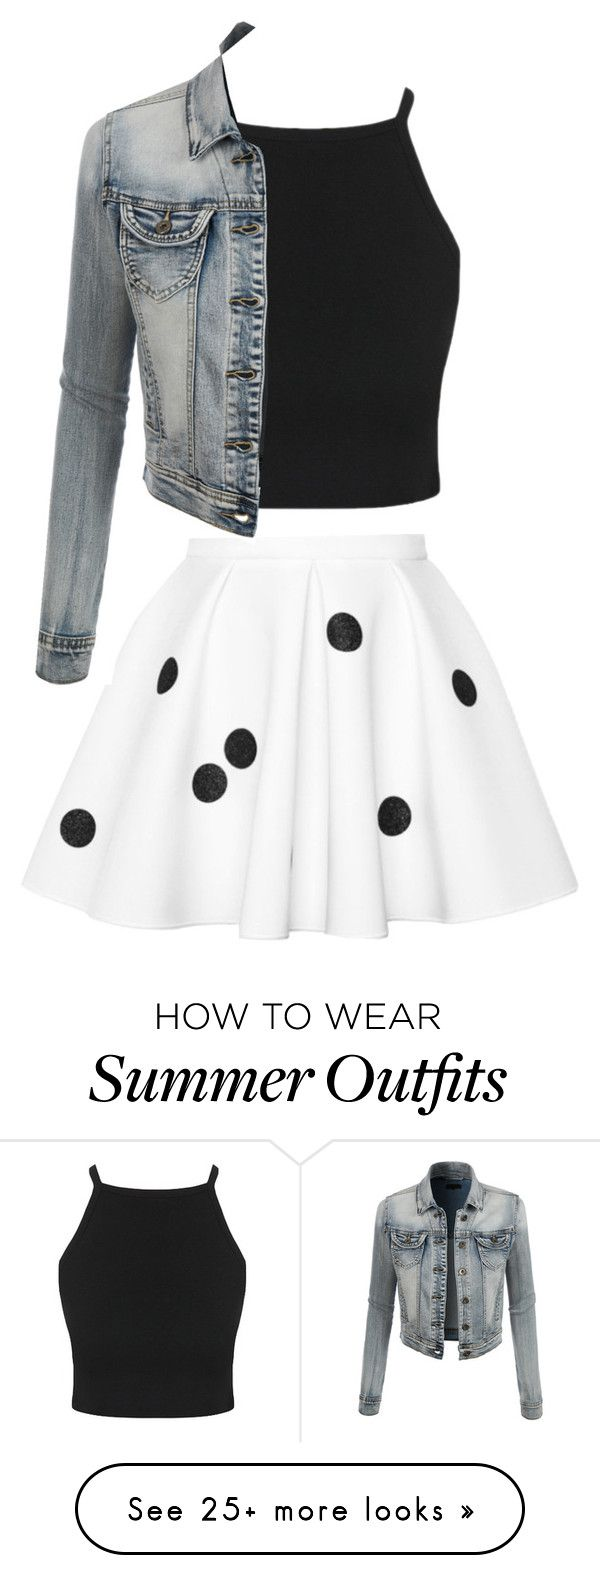 """""""Outfit"""" by slothhugs on Polyvore featuring LE3NO KittyGoesToBrighton fun flirty janeundone https://www.janeundone.com/2016/08/02/kitty-goes-to-brighton-other-untold-tales-from-pride-prejudice/"""